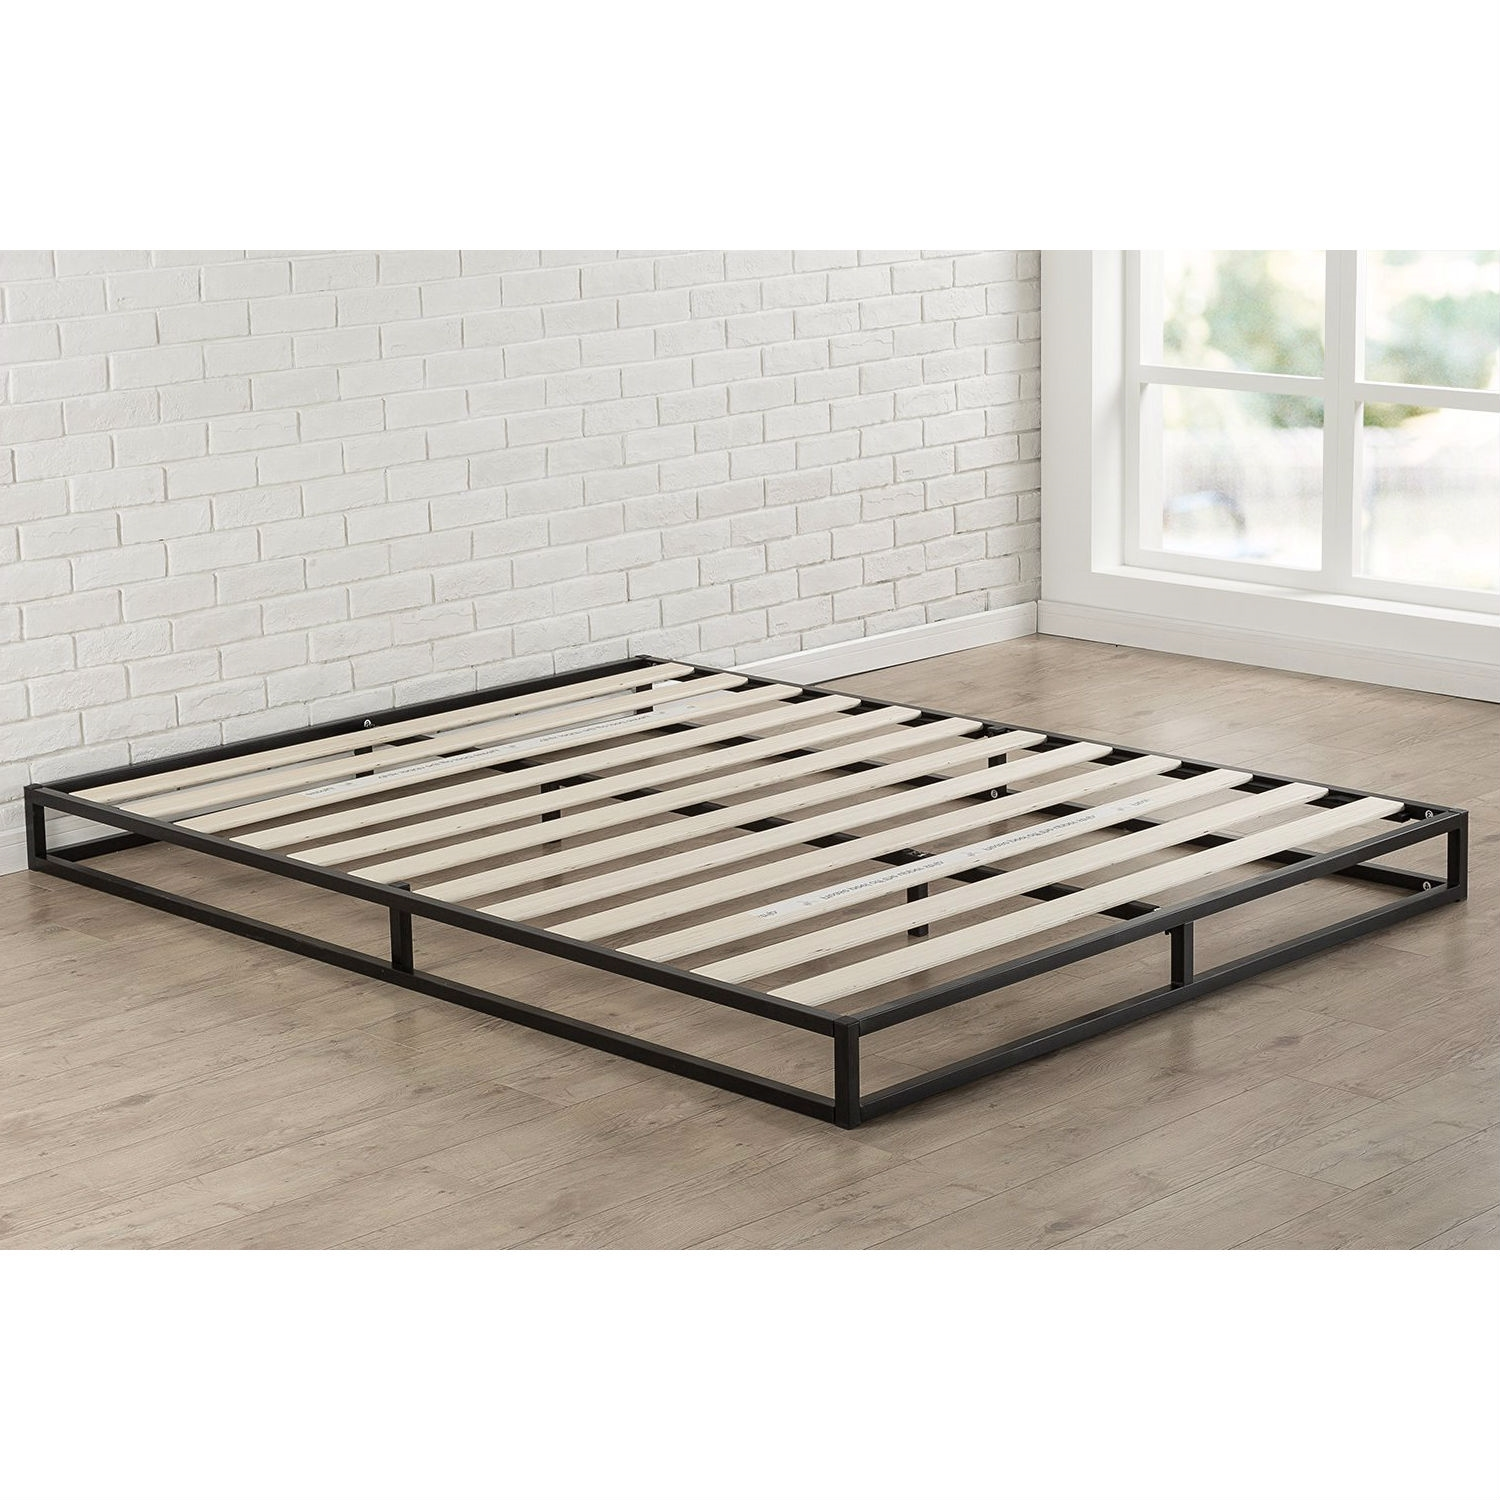 Twin Bed Frame Low Profile Twin 6 Inch Low Profile Platform Bed Frame With Modern